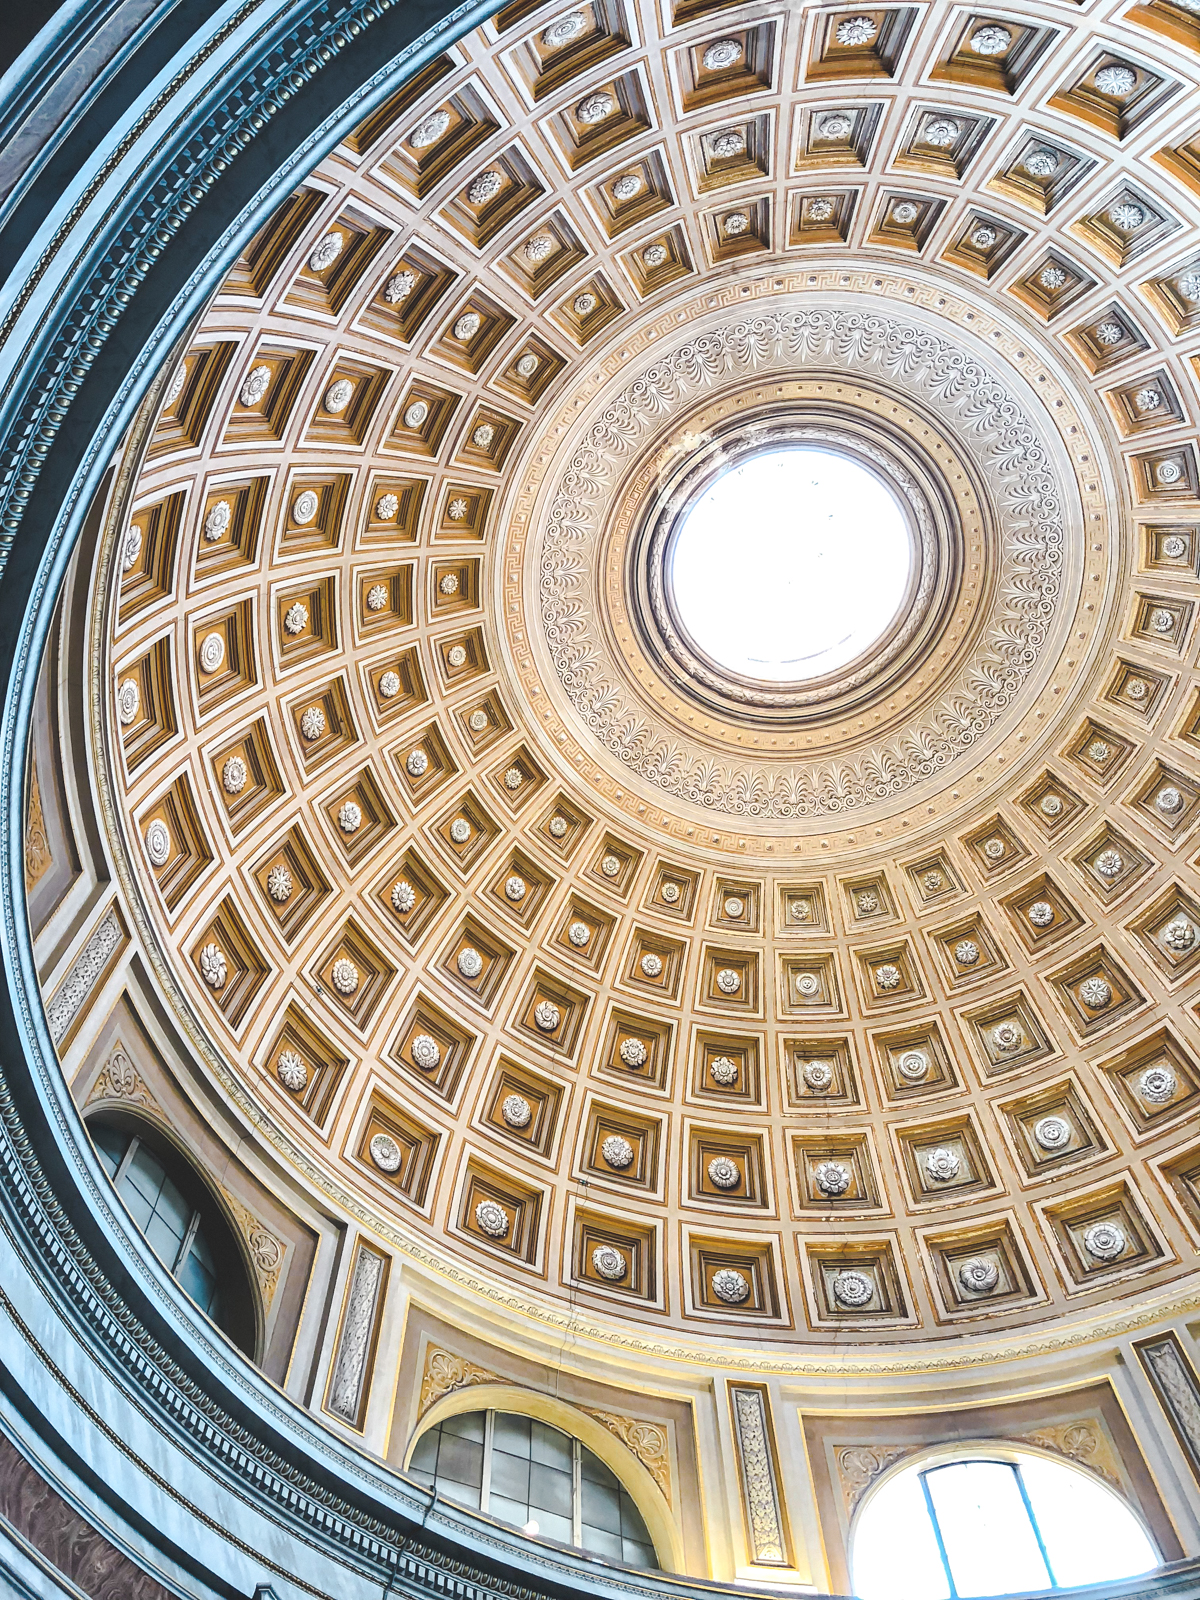 the ceiling of the Vatican in Rome